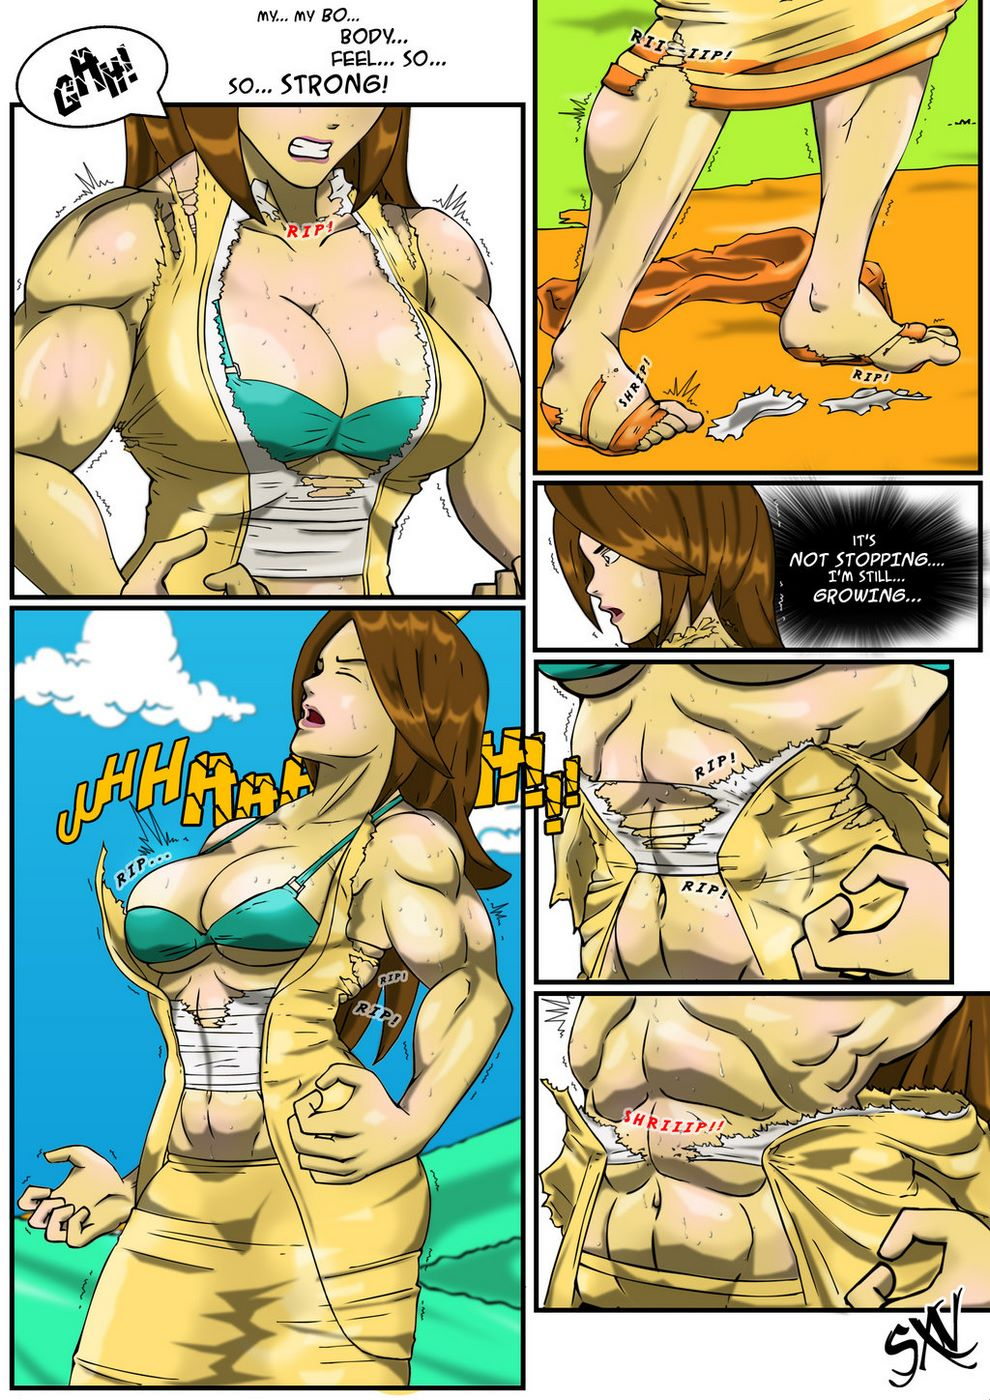 The Princess Fuck,Oh, Daisy! - Free Adult Porn Comix